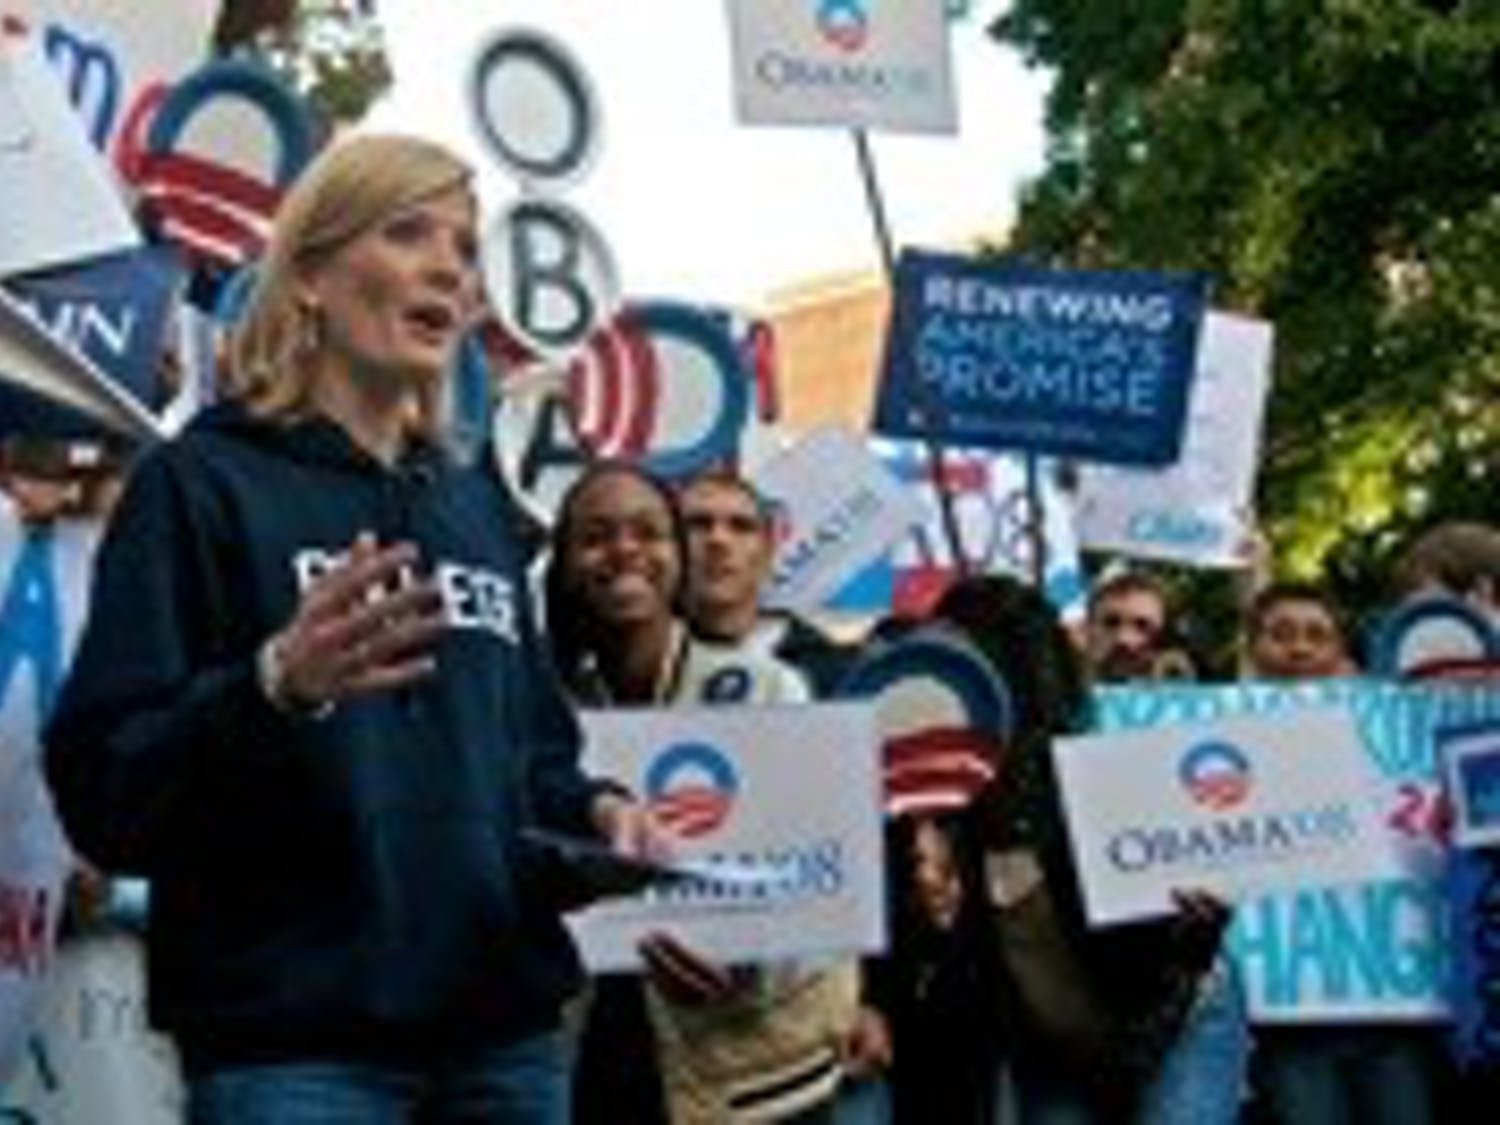 Good Morning America Weekend Edition co-anchor Kate Snow films against a backdrop of avid Obama supporters during a broadcast from Carroll quad early Saturday morning. As a part of an effort to gauge the political climate on college campuses in all 50 states, the morning news show filmed from different UNC campus locations throughout the week. Although filming began at 7 o'clock, students and other members of the surrounding community began organizing and lining up at 5:30 am. Both Obama and McCain supporters lined the walkways and steps of surrounding buildings for a chance to appear on national television.